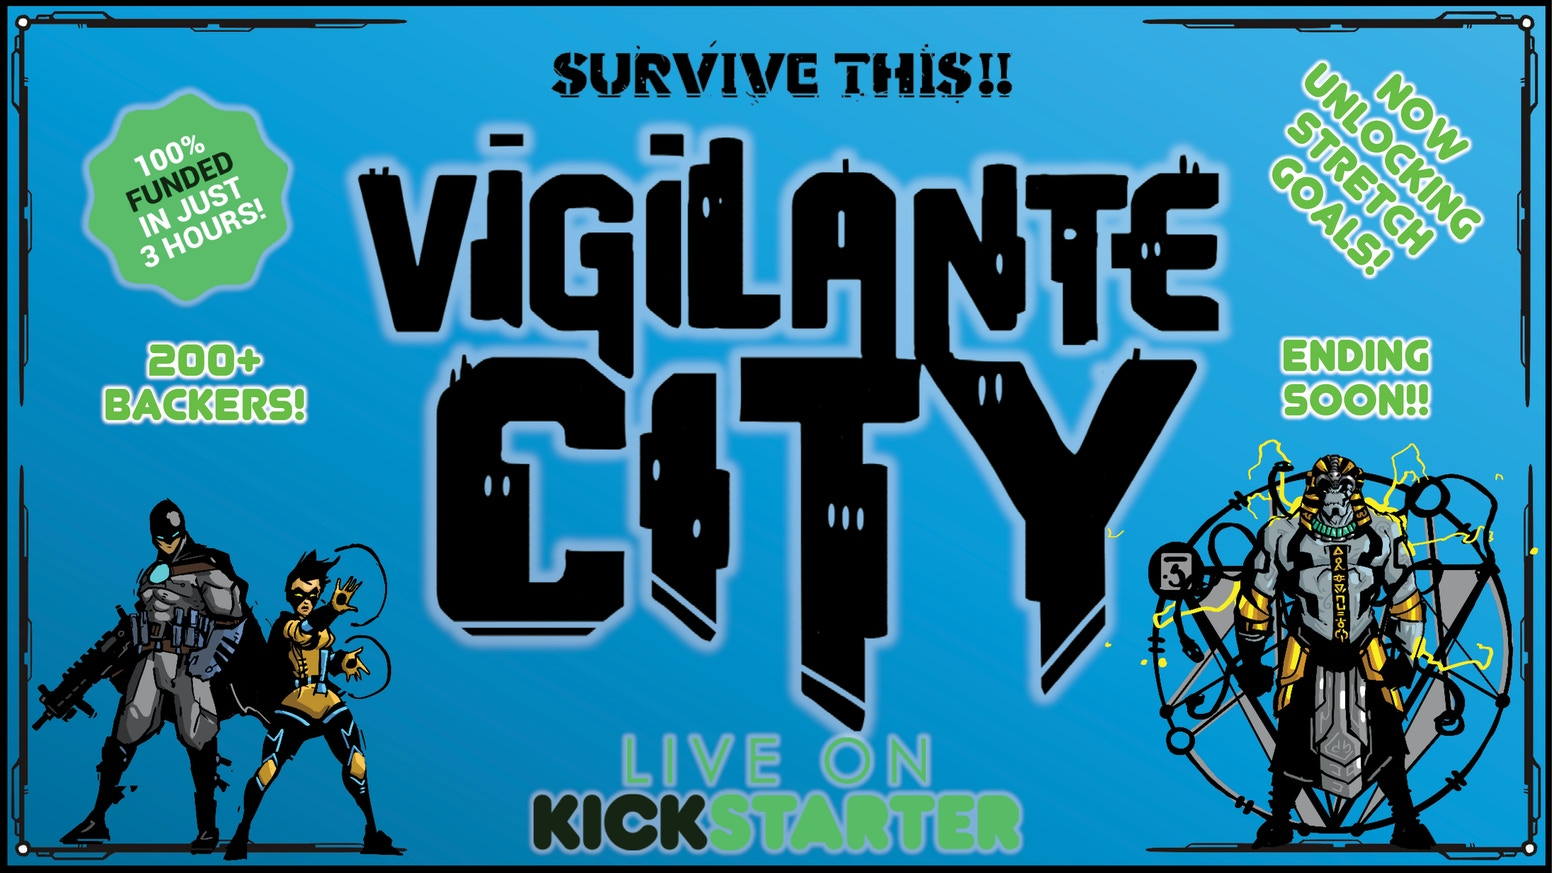 SURVIVE THIS!! Vigilante City is an RPG heavily influenced by the 90s cartoons Batman: The Animated Series, X-Men, Spider-man and TMNT!